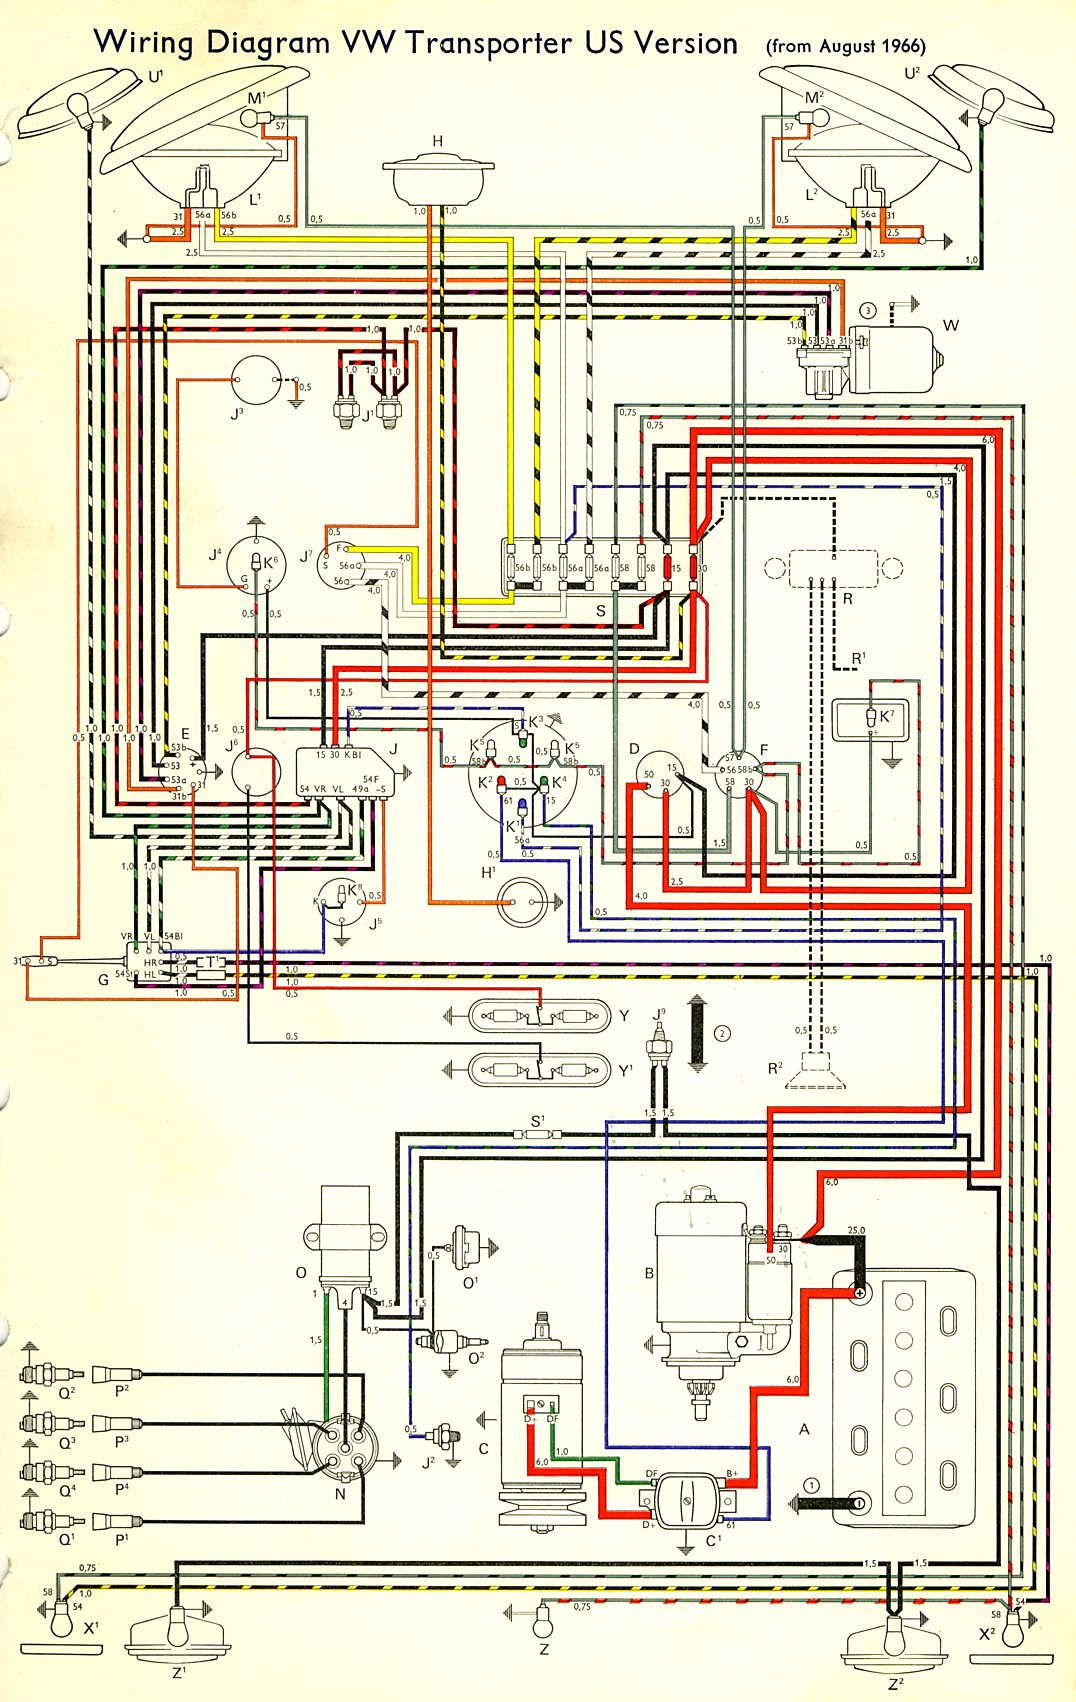 bus_67_USA 67 vw bus wiring harness 71 vw wiring harness \u2022 wiring diagrams Wiring Harness Diagram at metegol.co